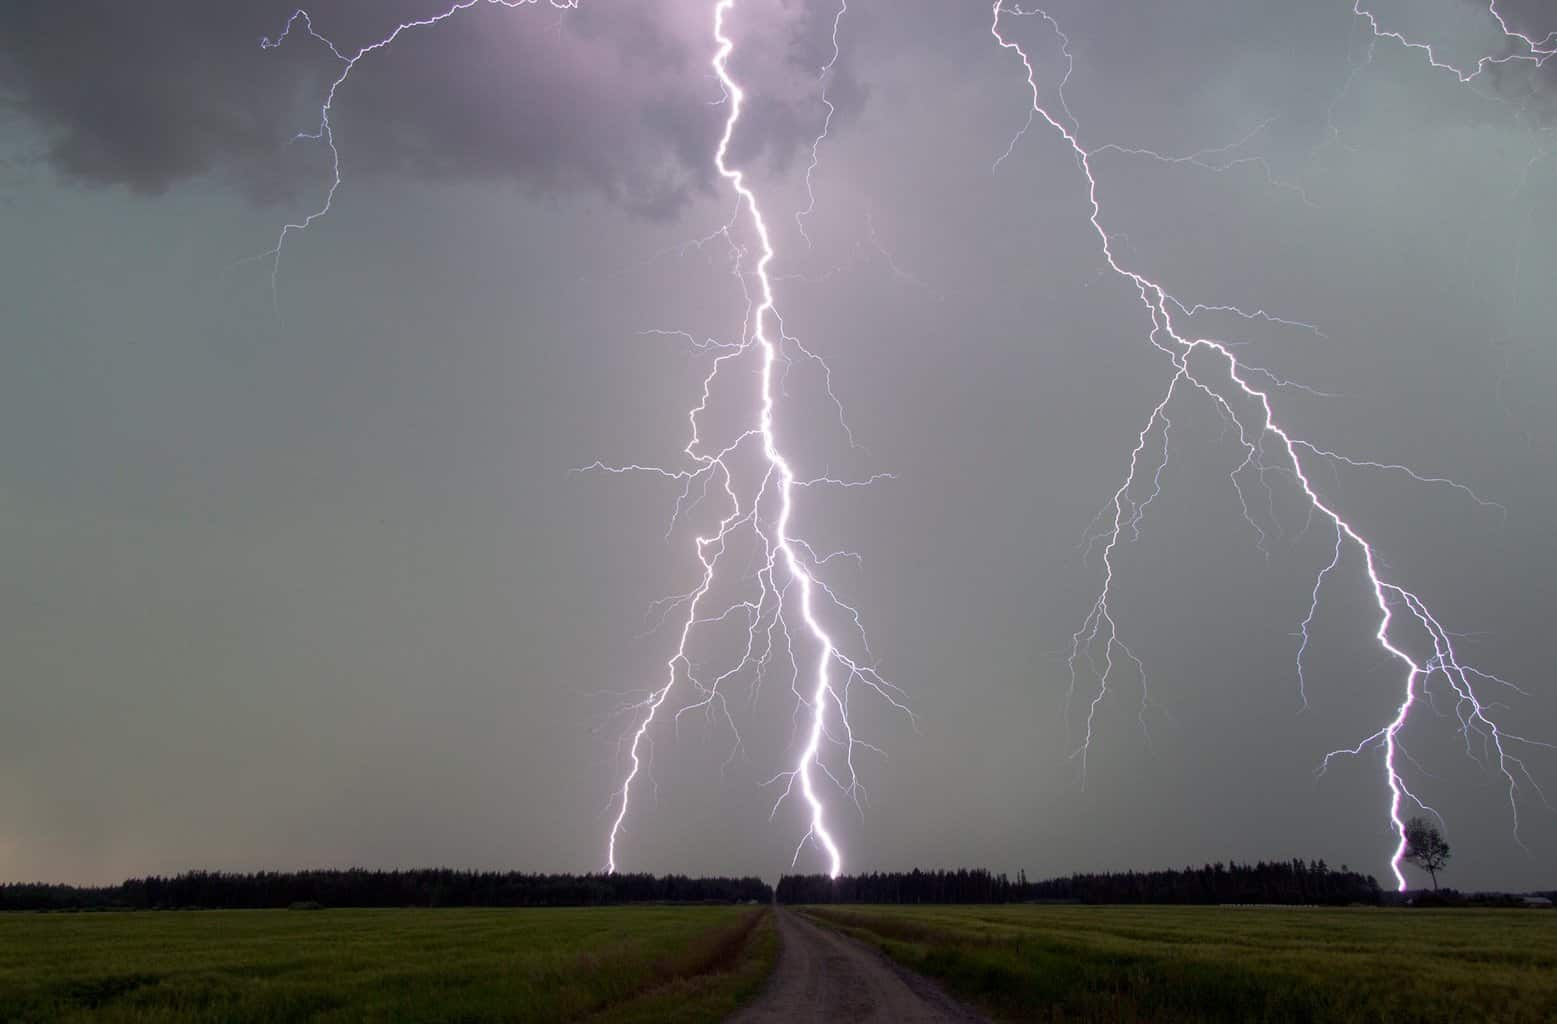 One of the best daytime lightning strikes what i have ever photographed. Kalajoki, Finland summer 2010.